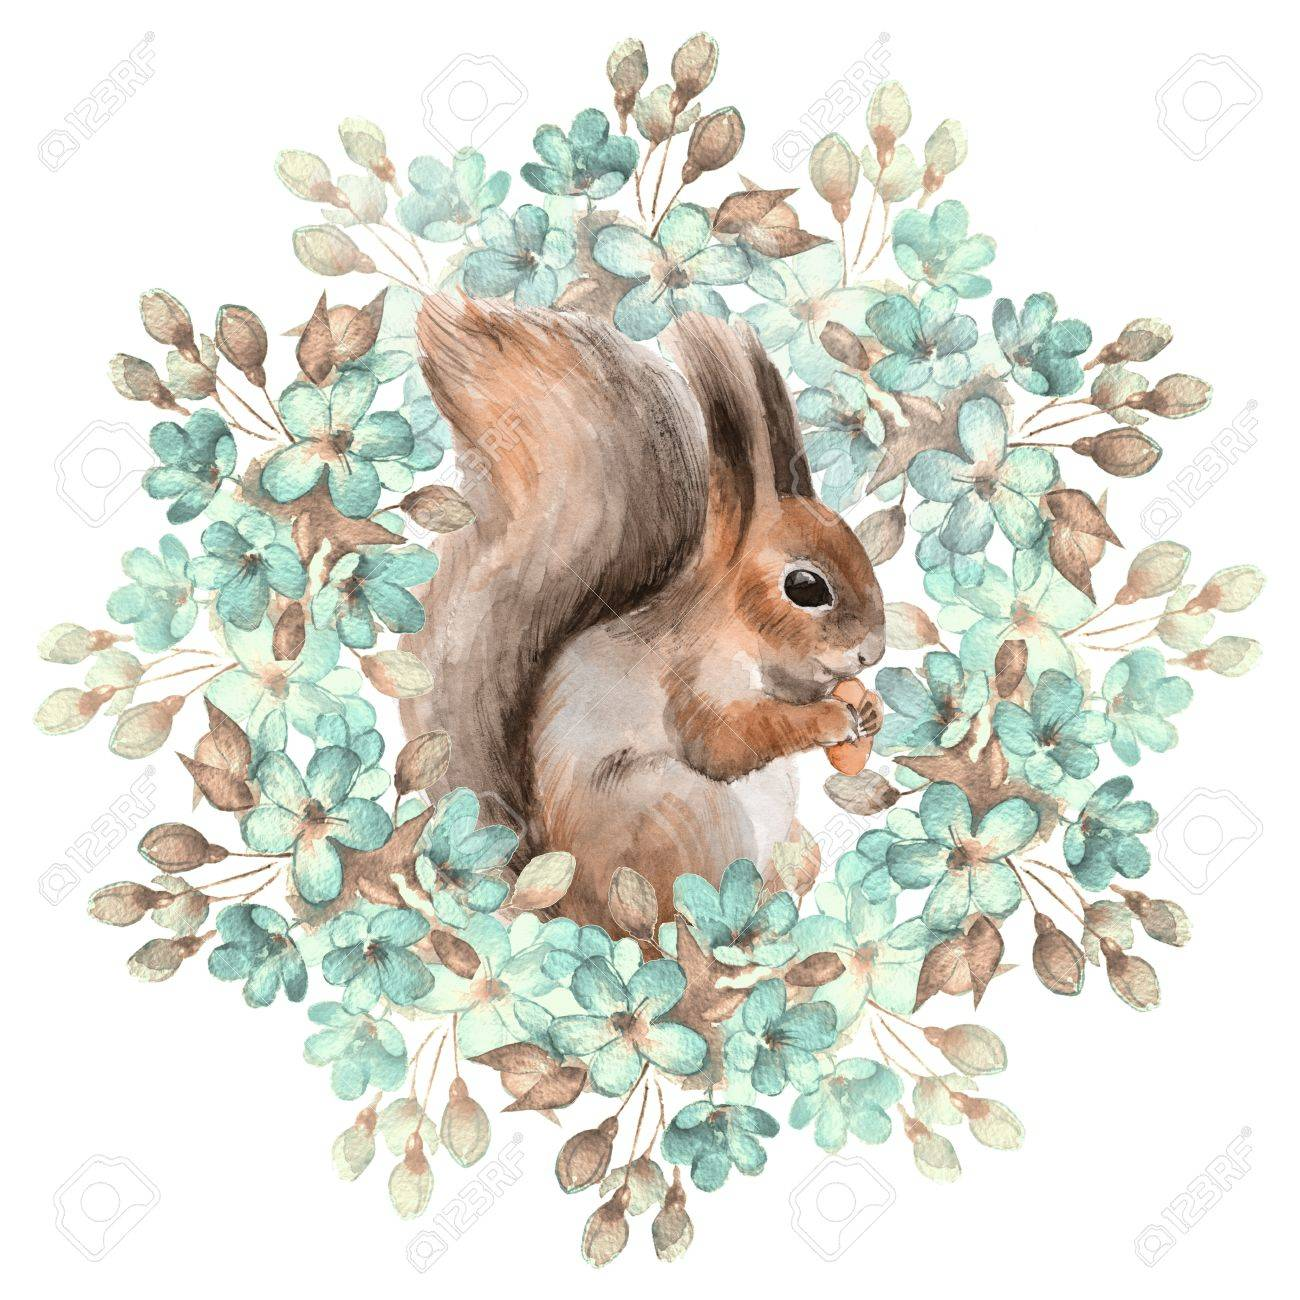 Squirrel and flowers - 50573456